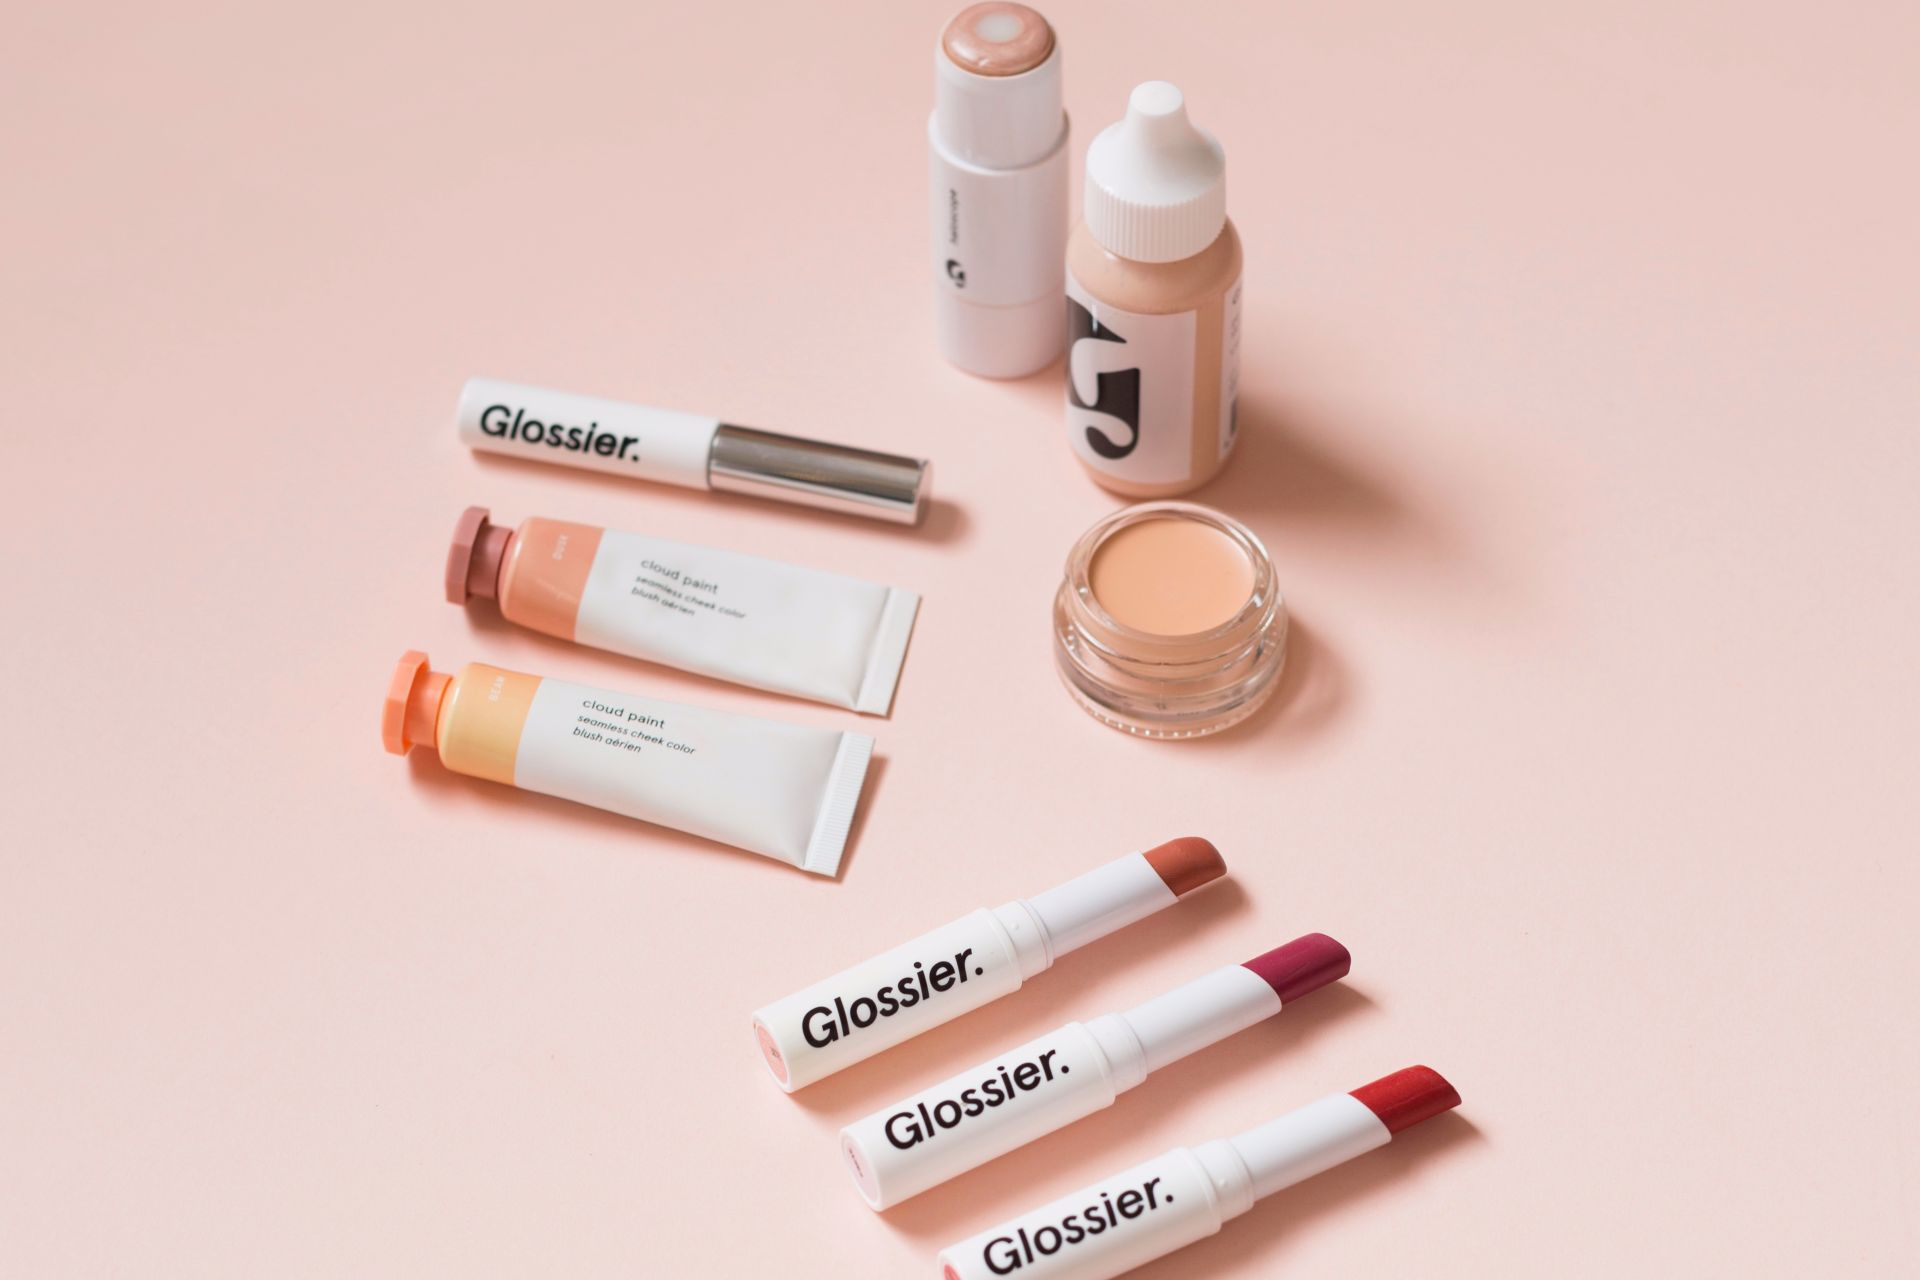 Glossier 20% Off Sale - This is Glossier's ONLY sale of the year so if you've been wanting to try out their products now is the time do buy all of them! Their already reasonably low prices make this 20% off sale even better and you get free shipping over $30! Glossier would also make a great gift because all orders come packed in adorable pink clear pouches.